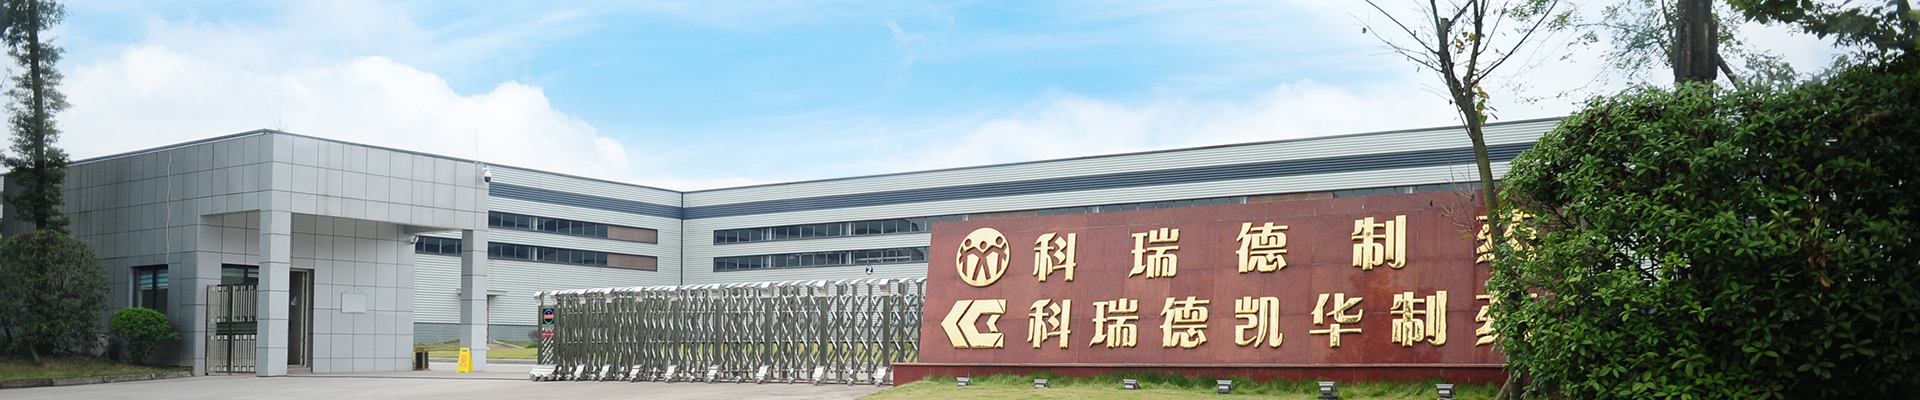 Sichuan Credit Pharmaceutical Co., Ltd.